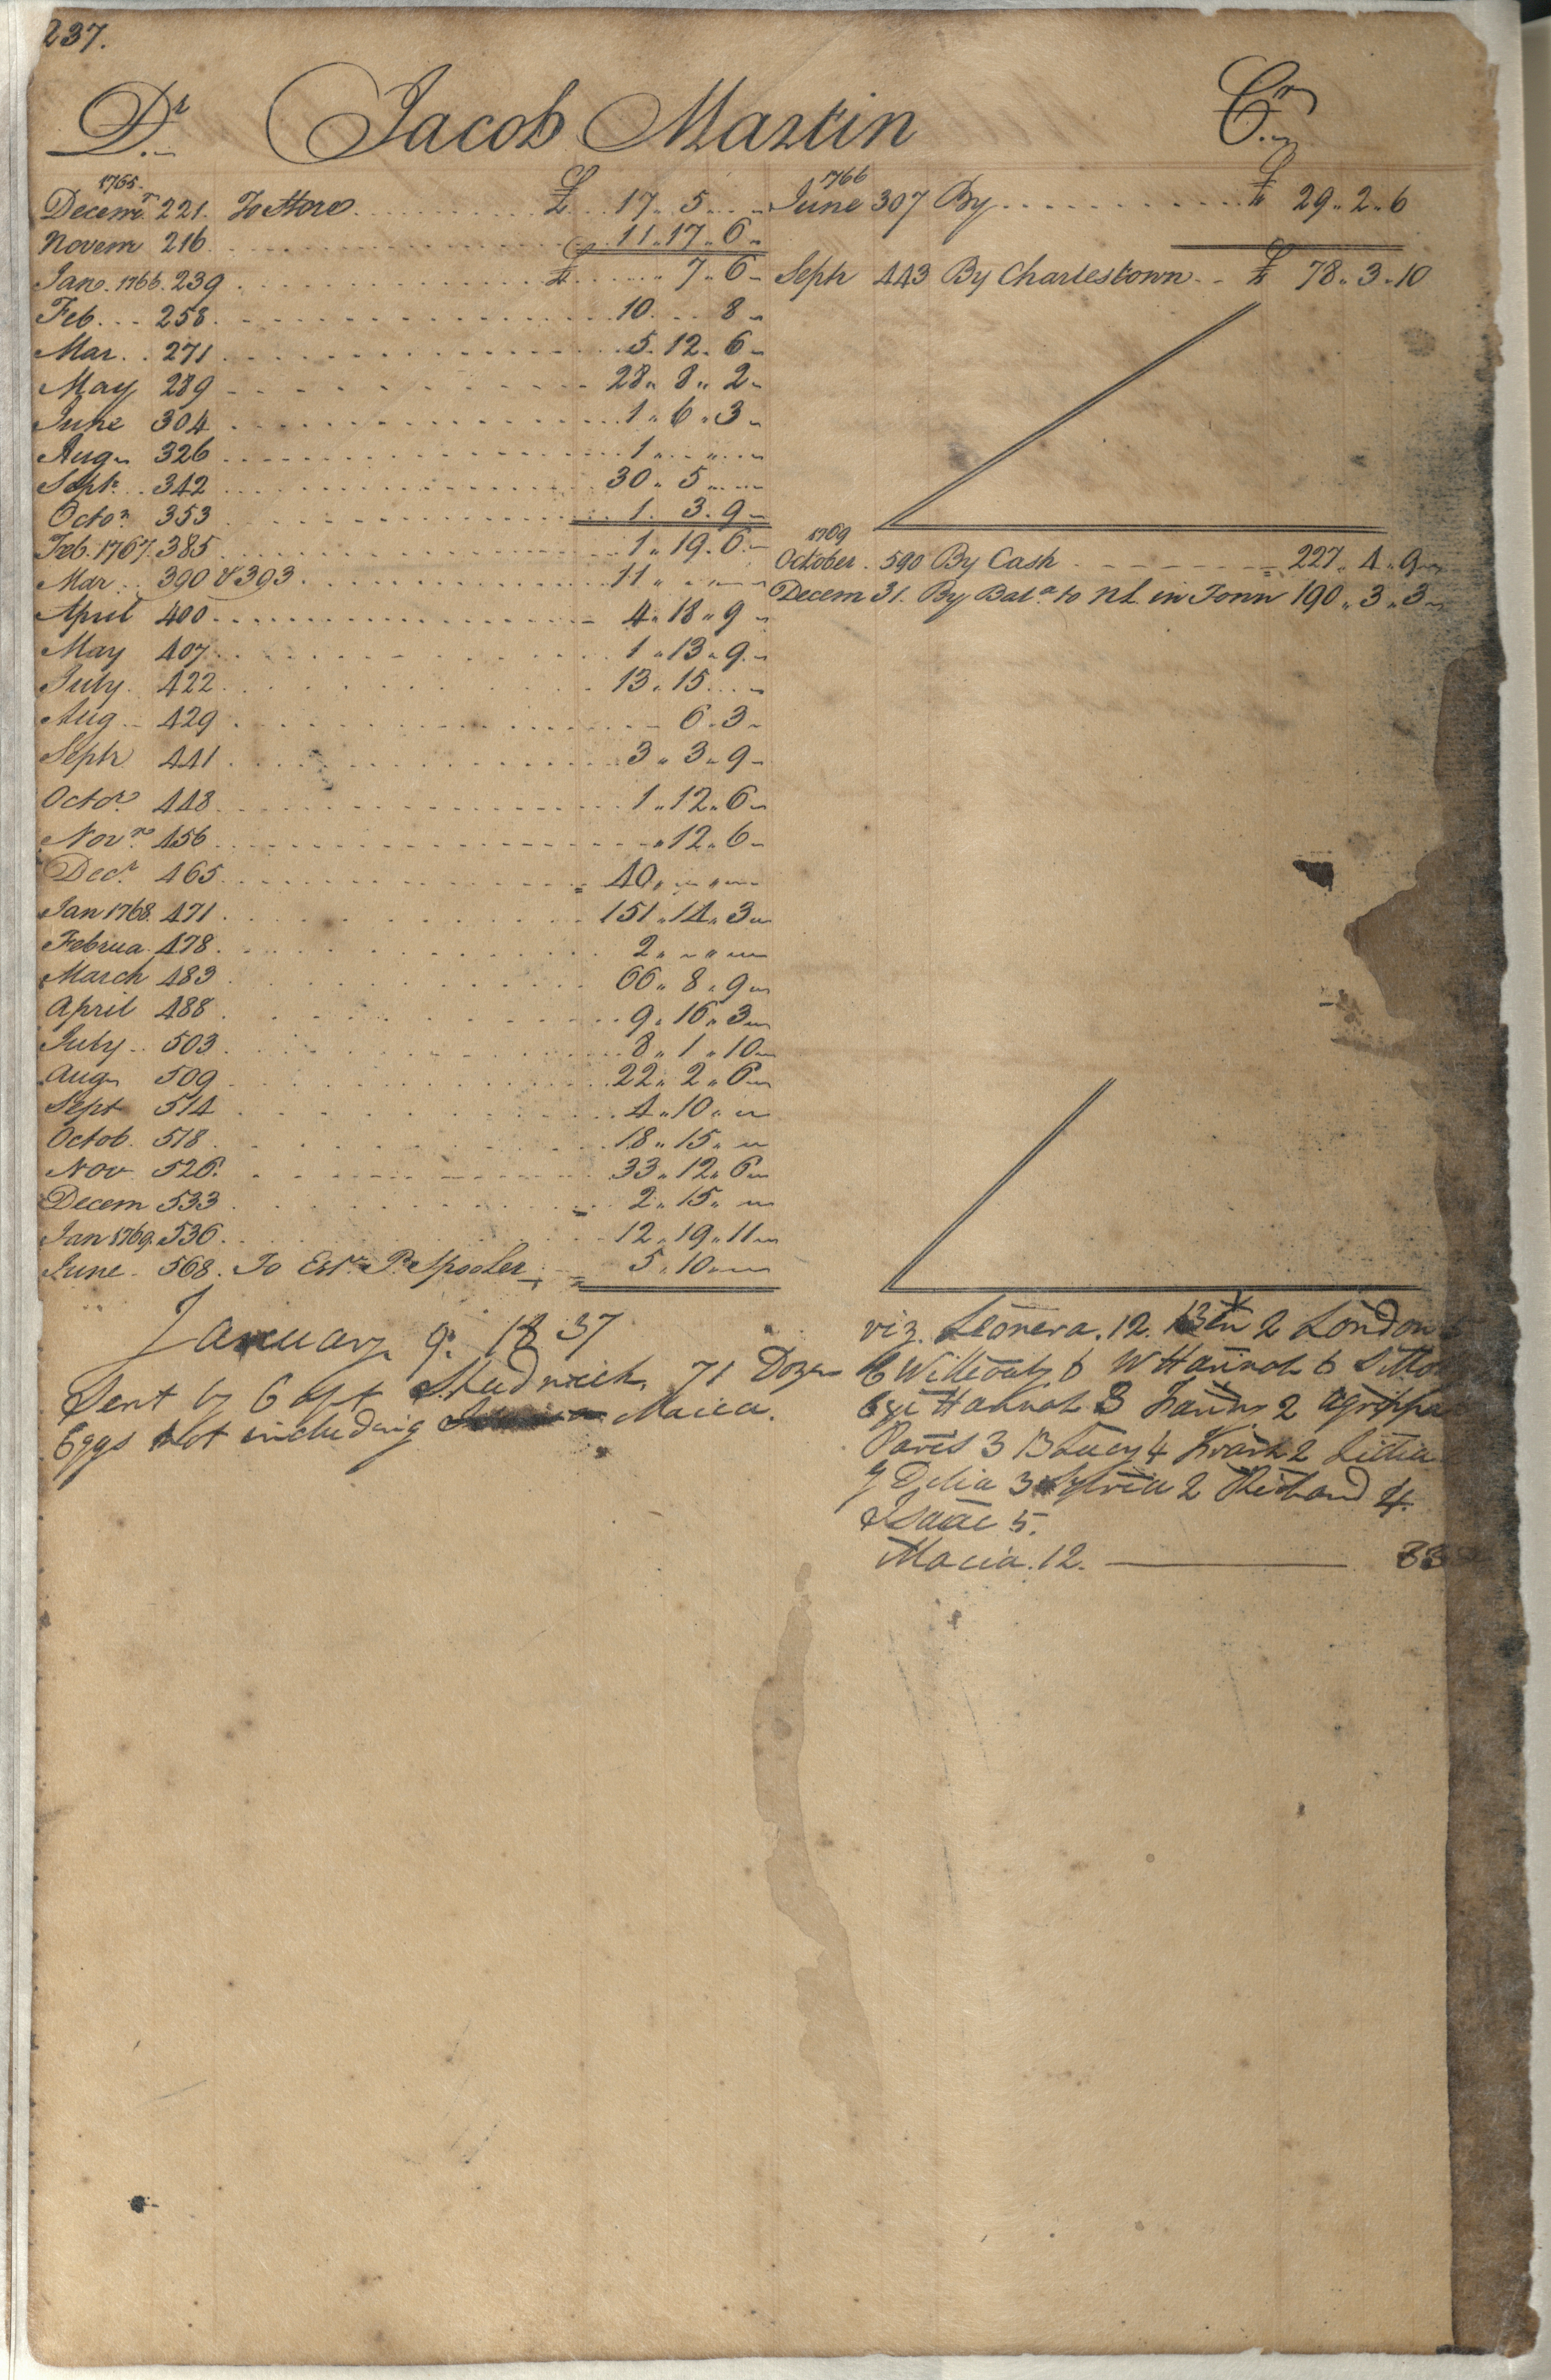 Plowden Weston's Business Ledger, page 237